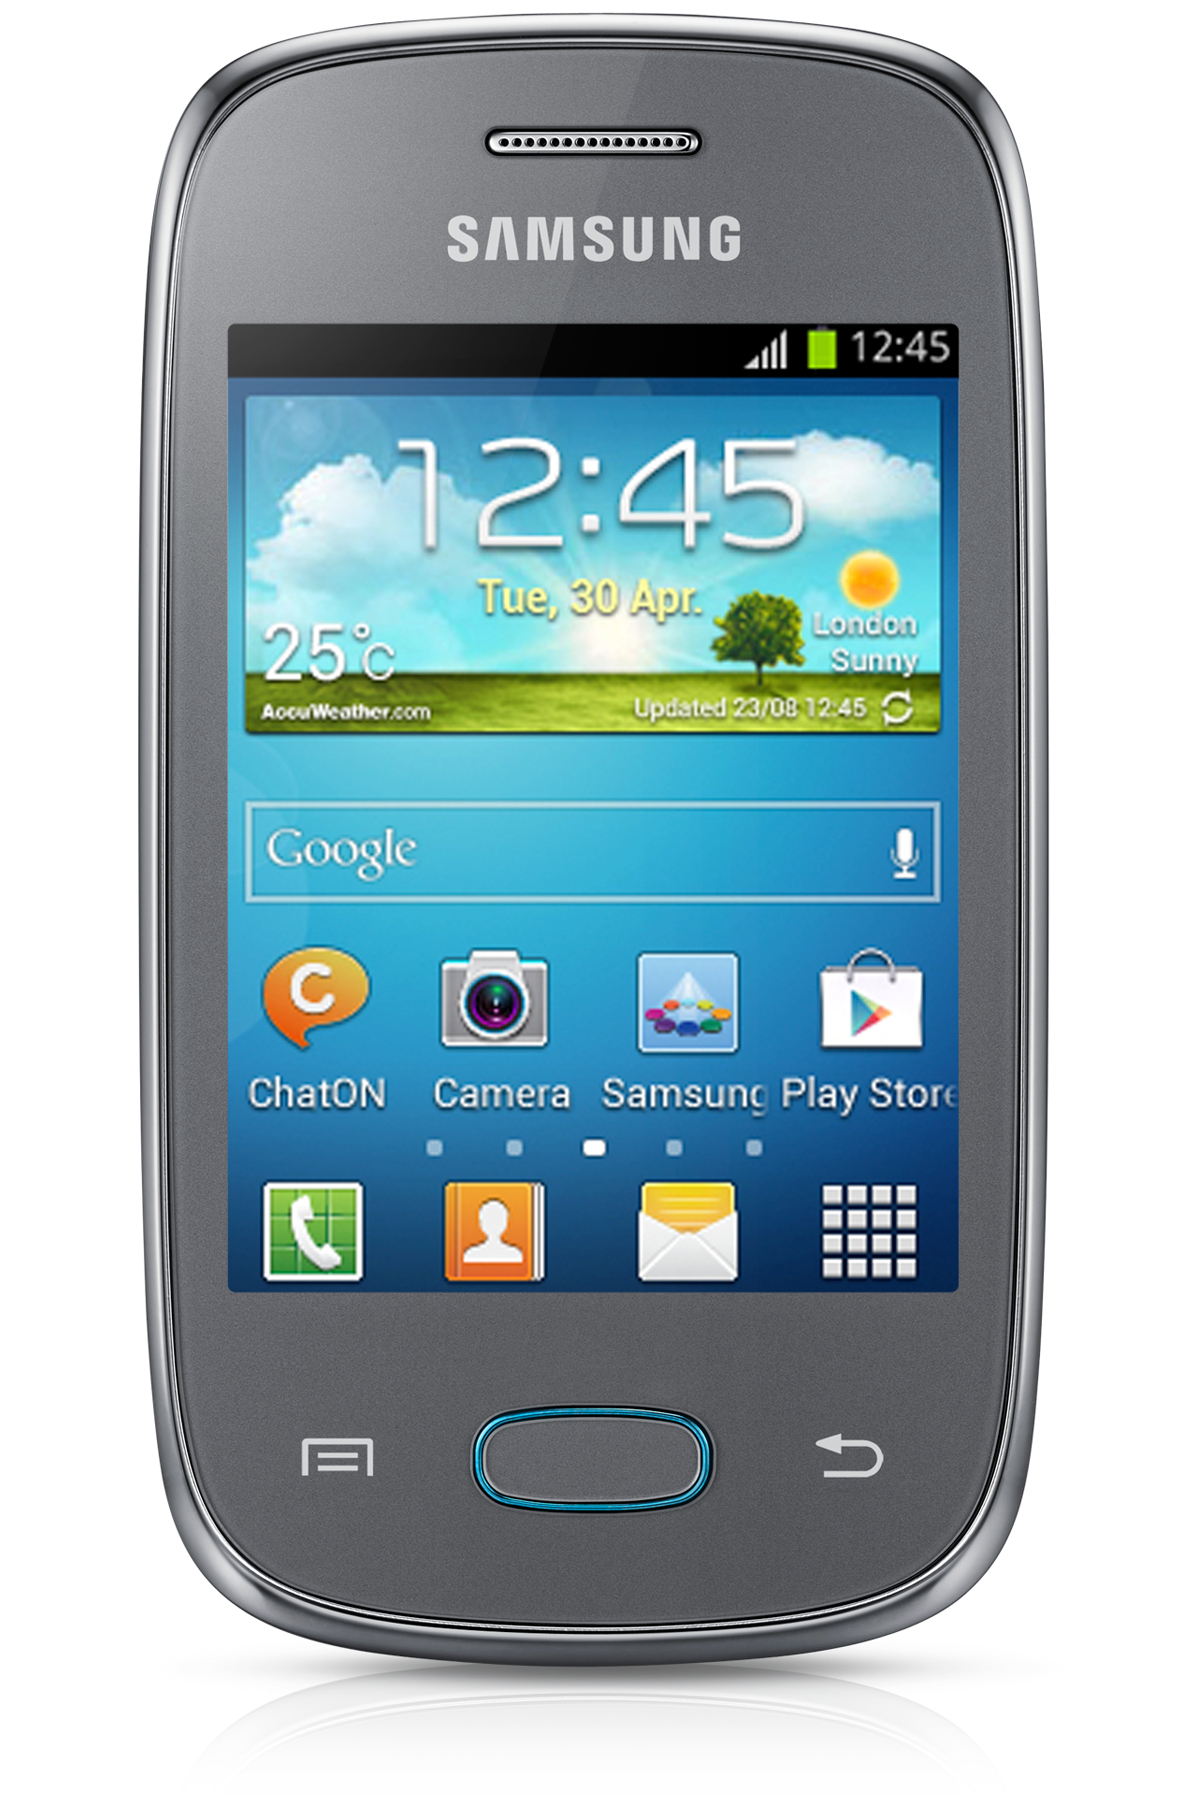 Samsung GALAXY Pocket Neo - Android 4.1 Jelly Bean Mobile Smart Phone S5310